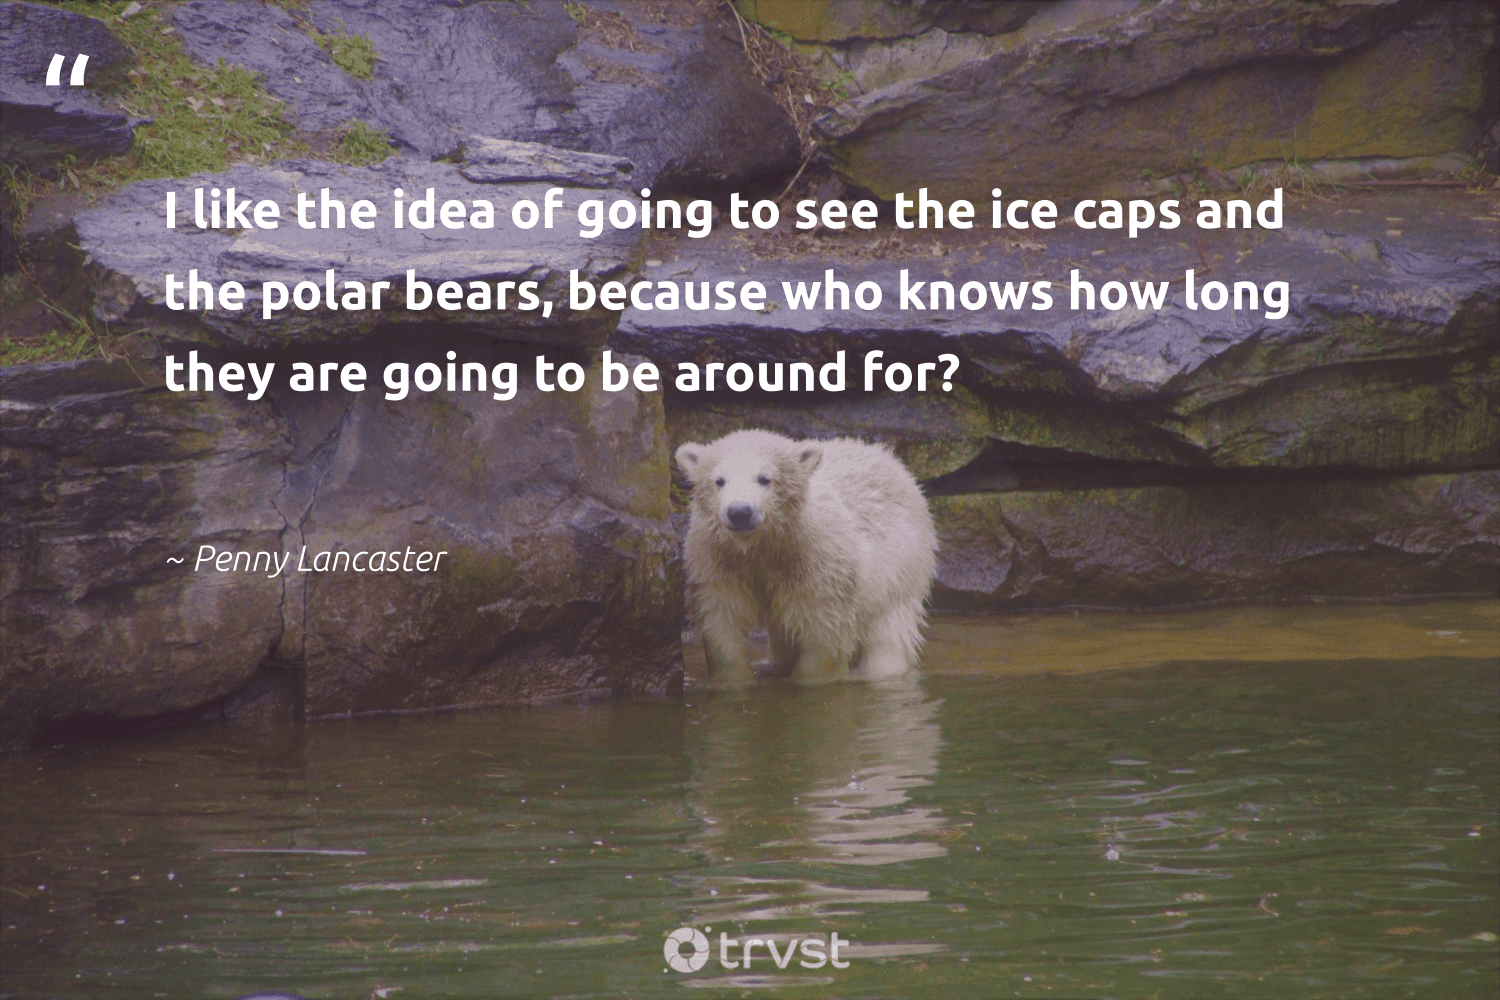 """""""I like the idea of going to see the ice caps and the polar bears, because who knows how long they are going to be around for?""""  - Penny Lancaster #trvst #quotes #bears #biodiversity #ecoconscious #majesticwildlife #dotherightthing #protectnature #dosomething #splendidanimals #changetheworld #amazingworld"""